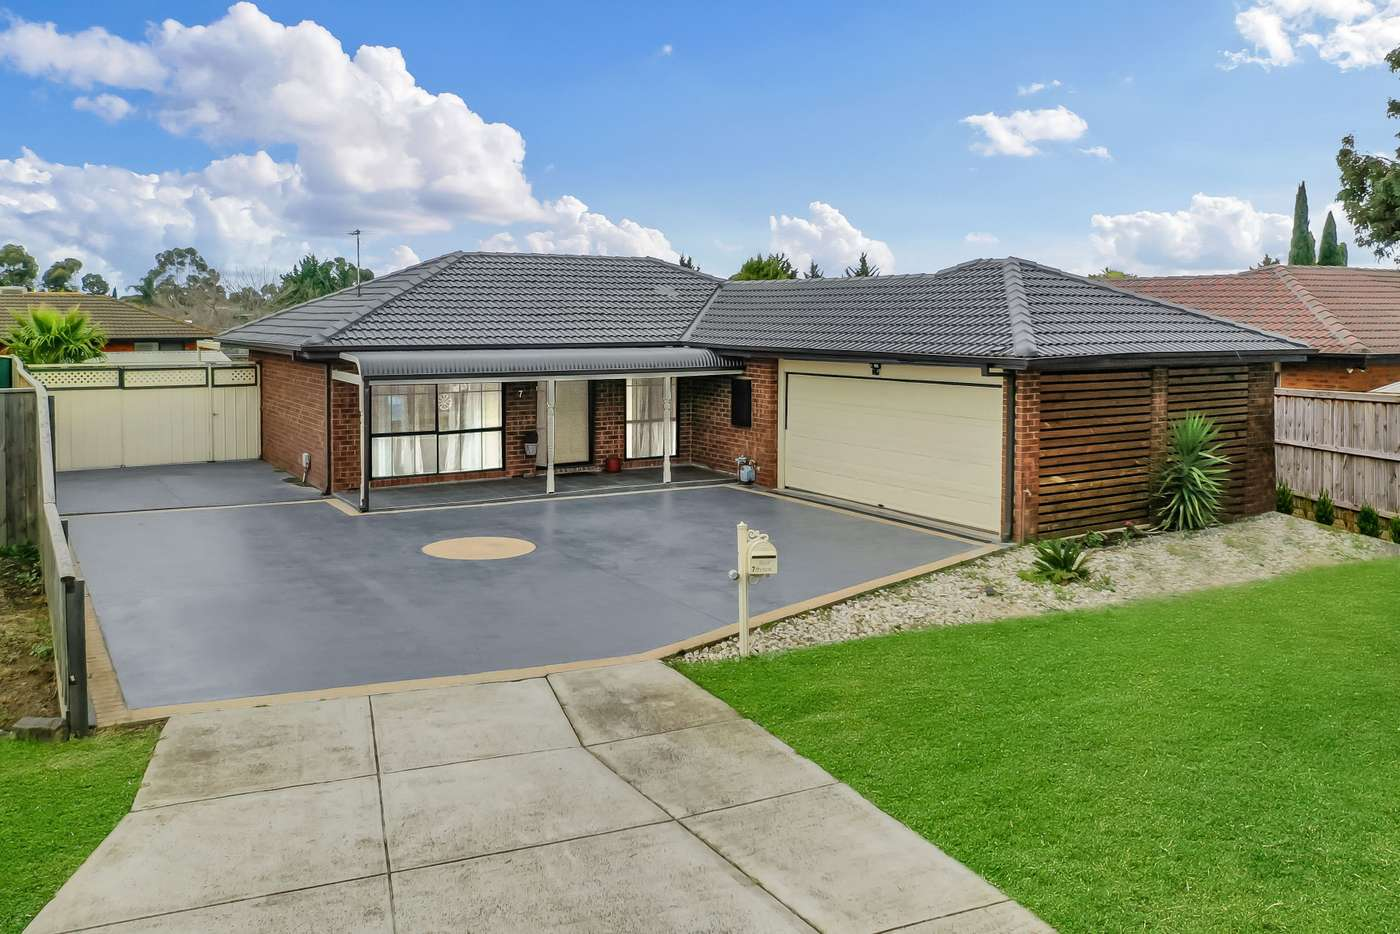 Main view of Homely house listing, 7 Sandstone Court, Delahey VIC 3037